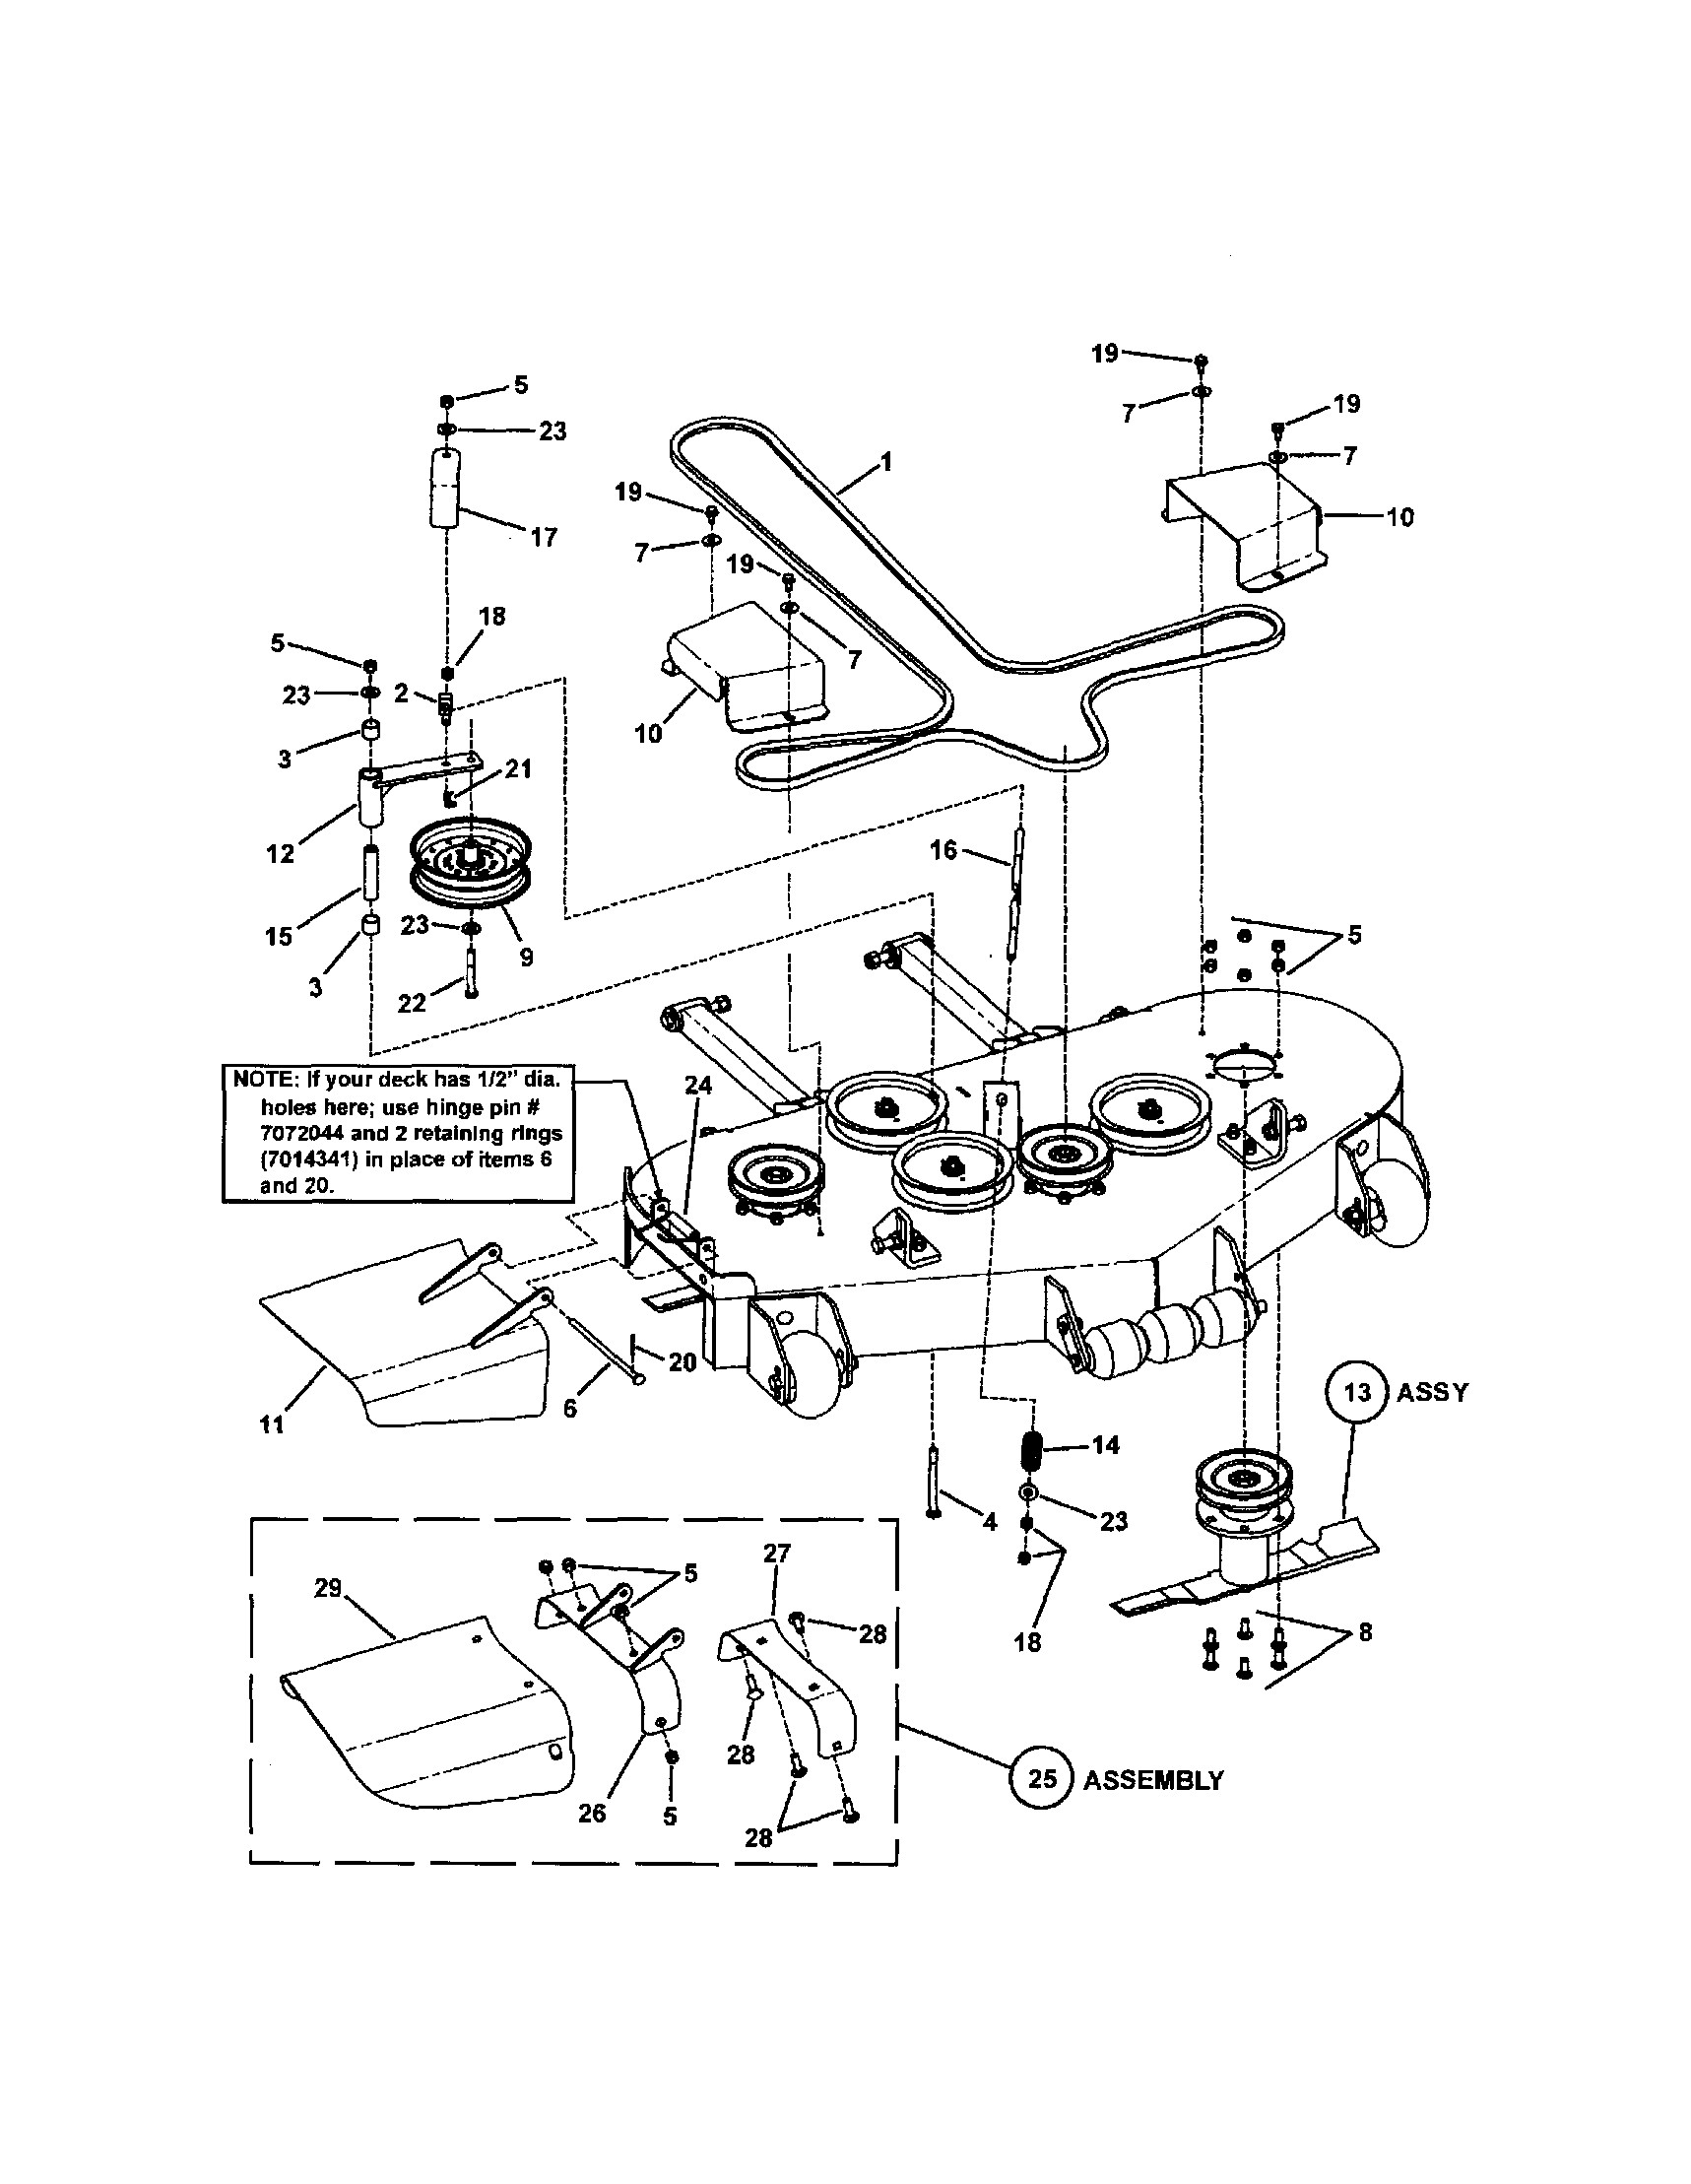 Circuit Electric For Guide: 2007 club car precedent wiring